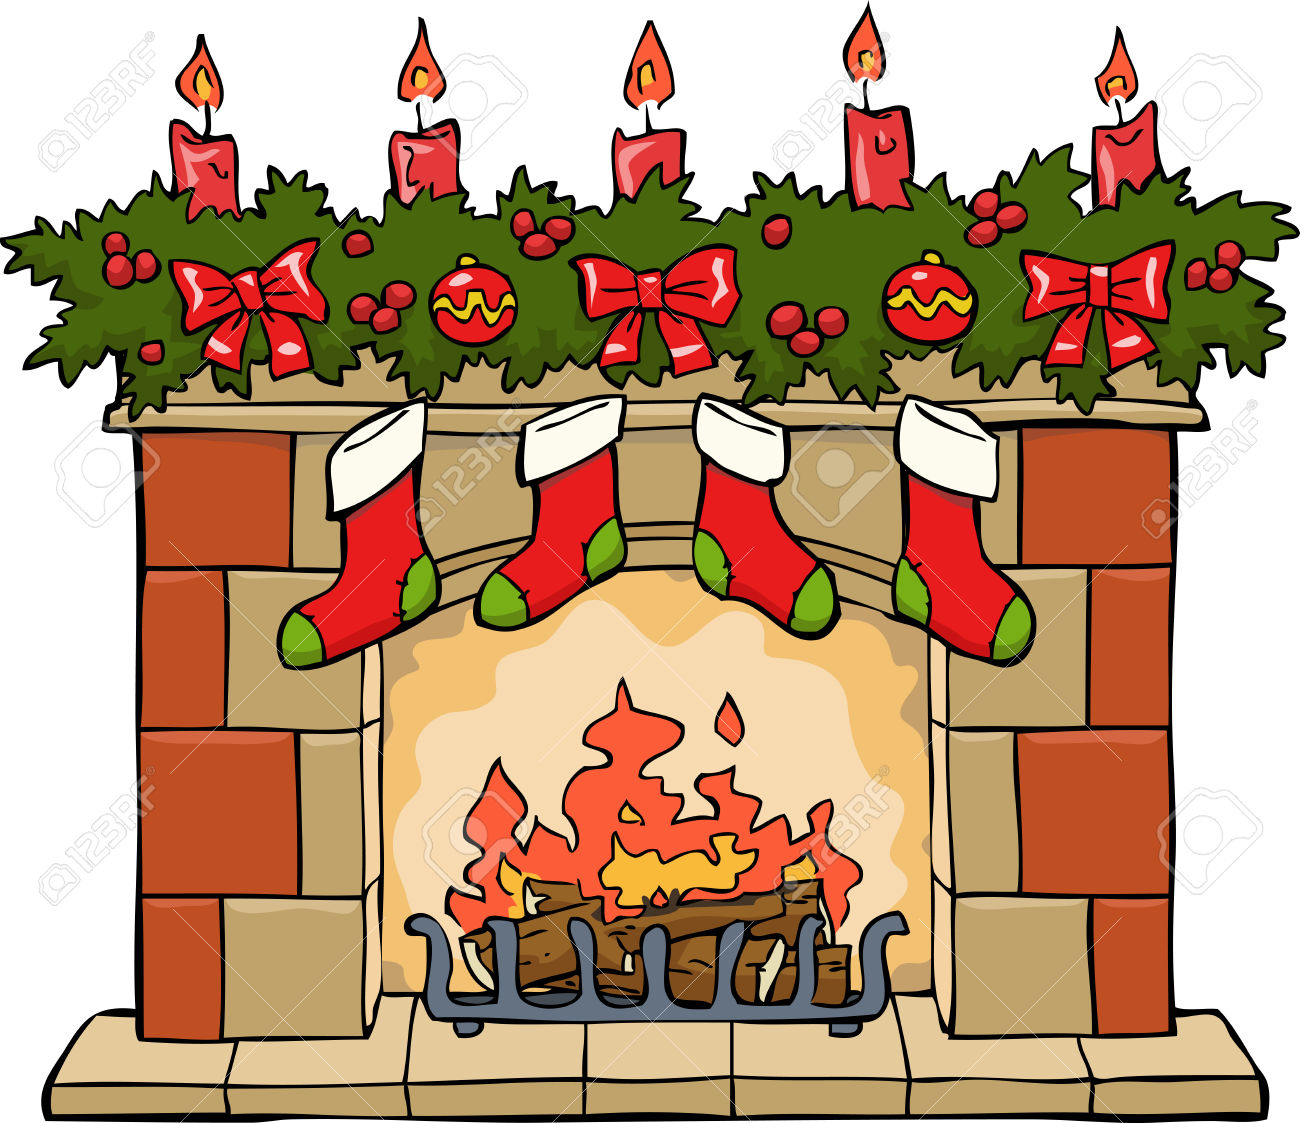 fireplace: Fireplace in Christmas on a w-fireplace: Fireplace in Christmas on a white background vector-12